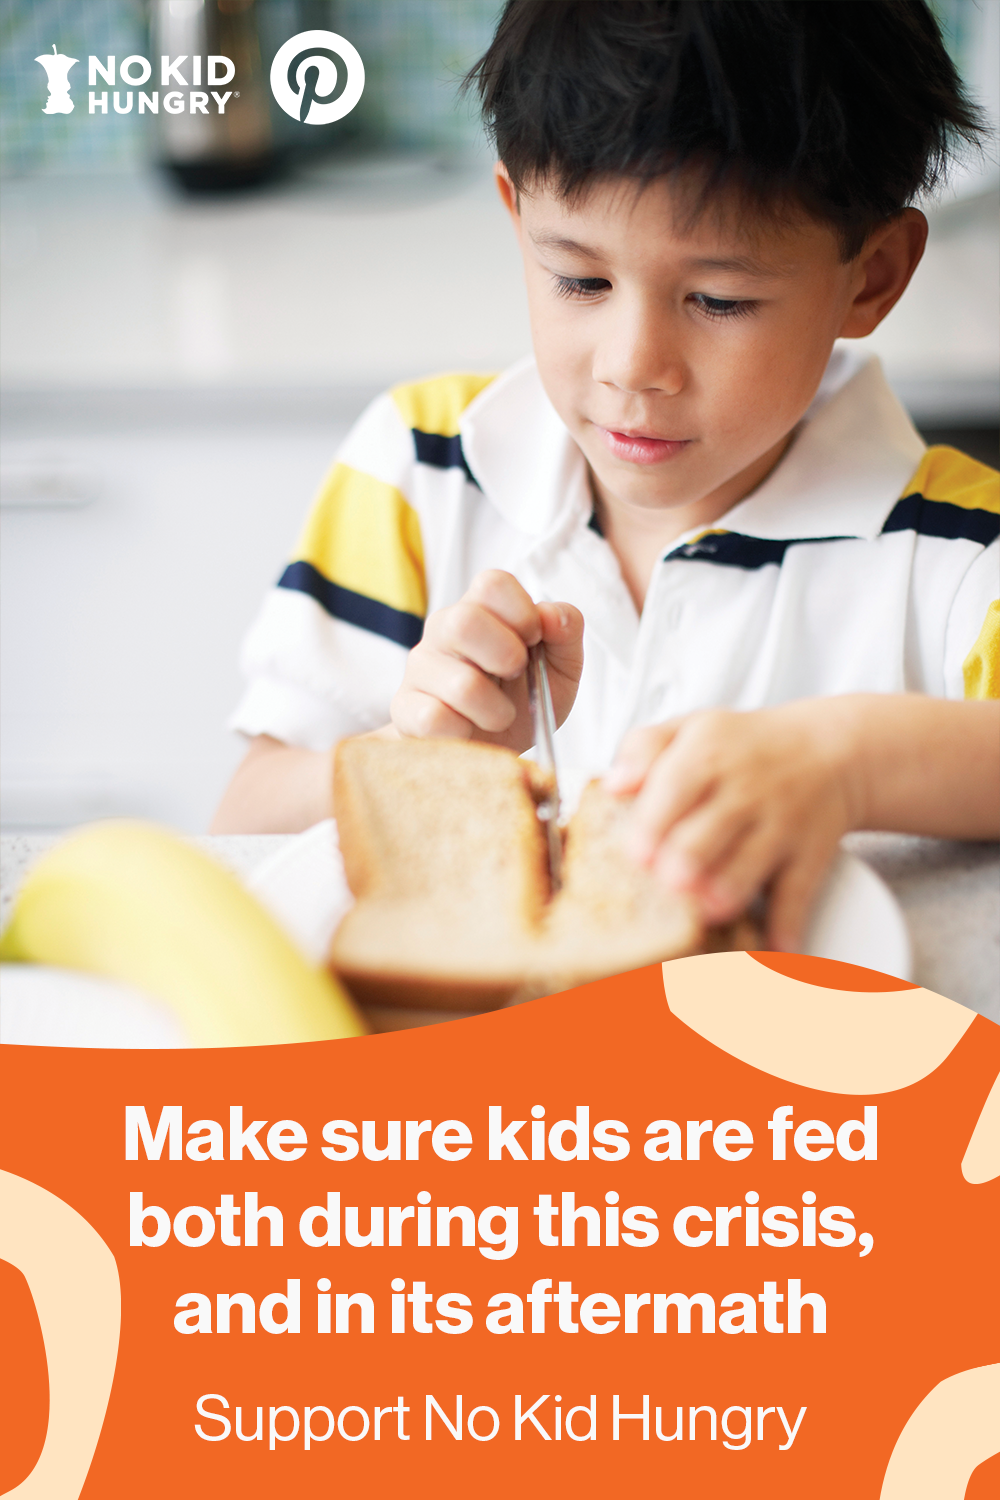 No Kid Hungry has a plan for America's kids who need us